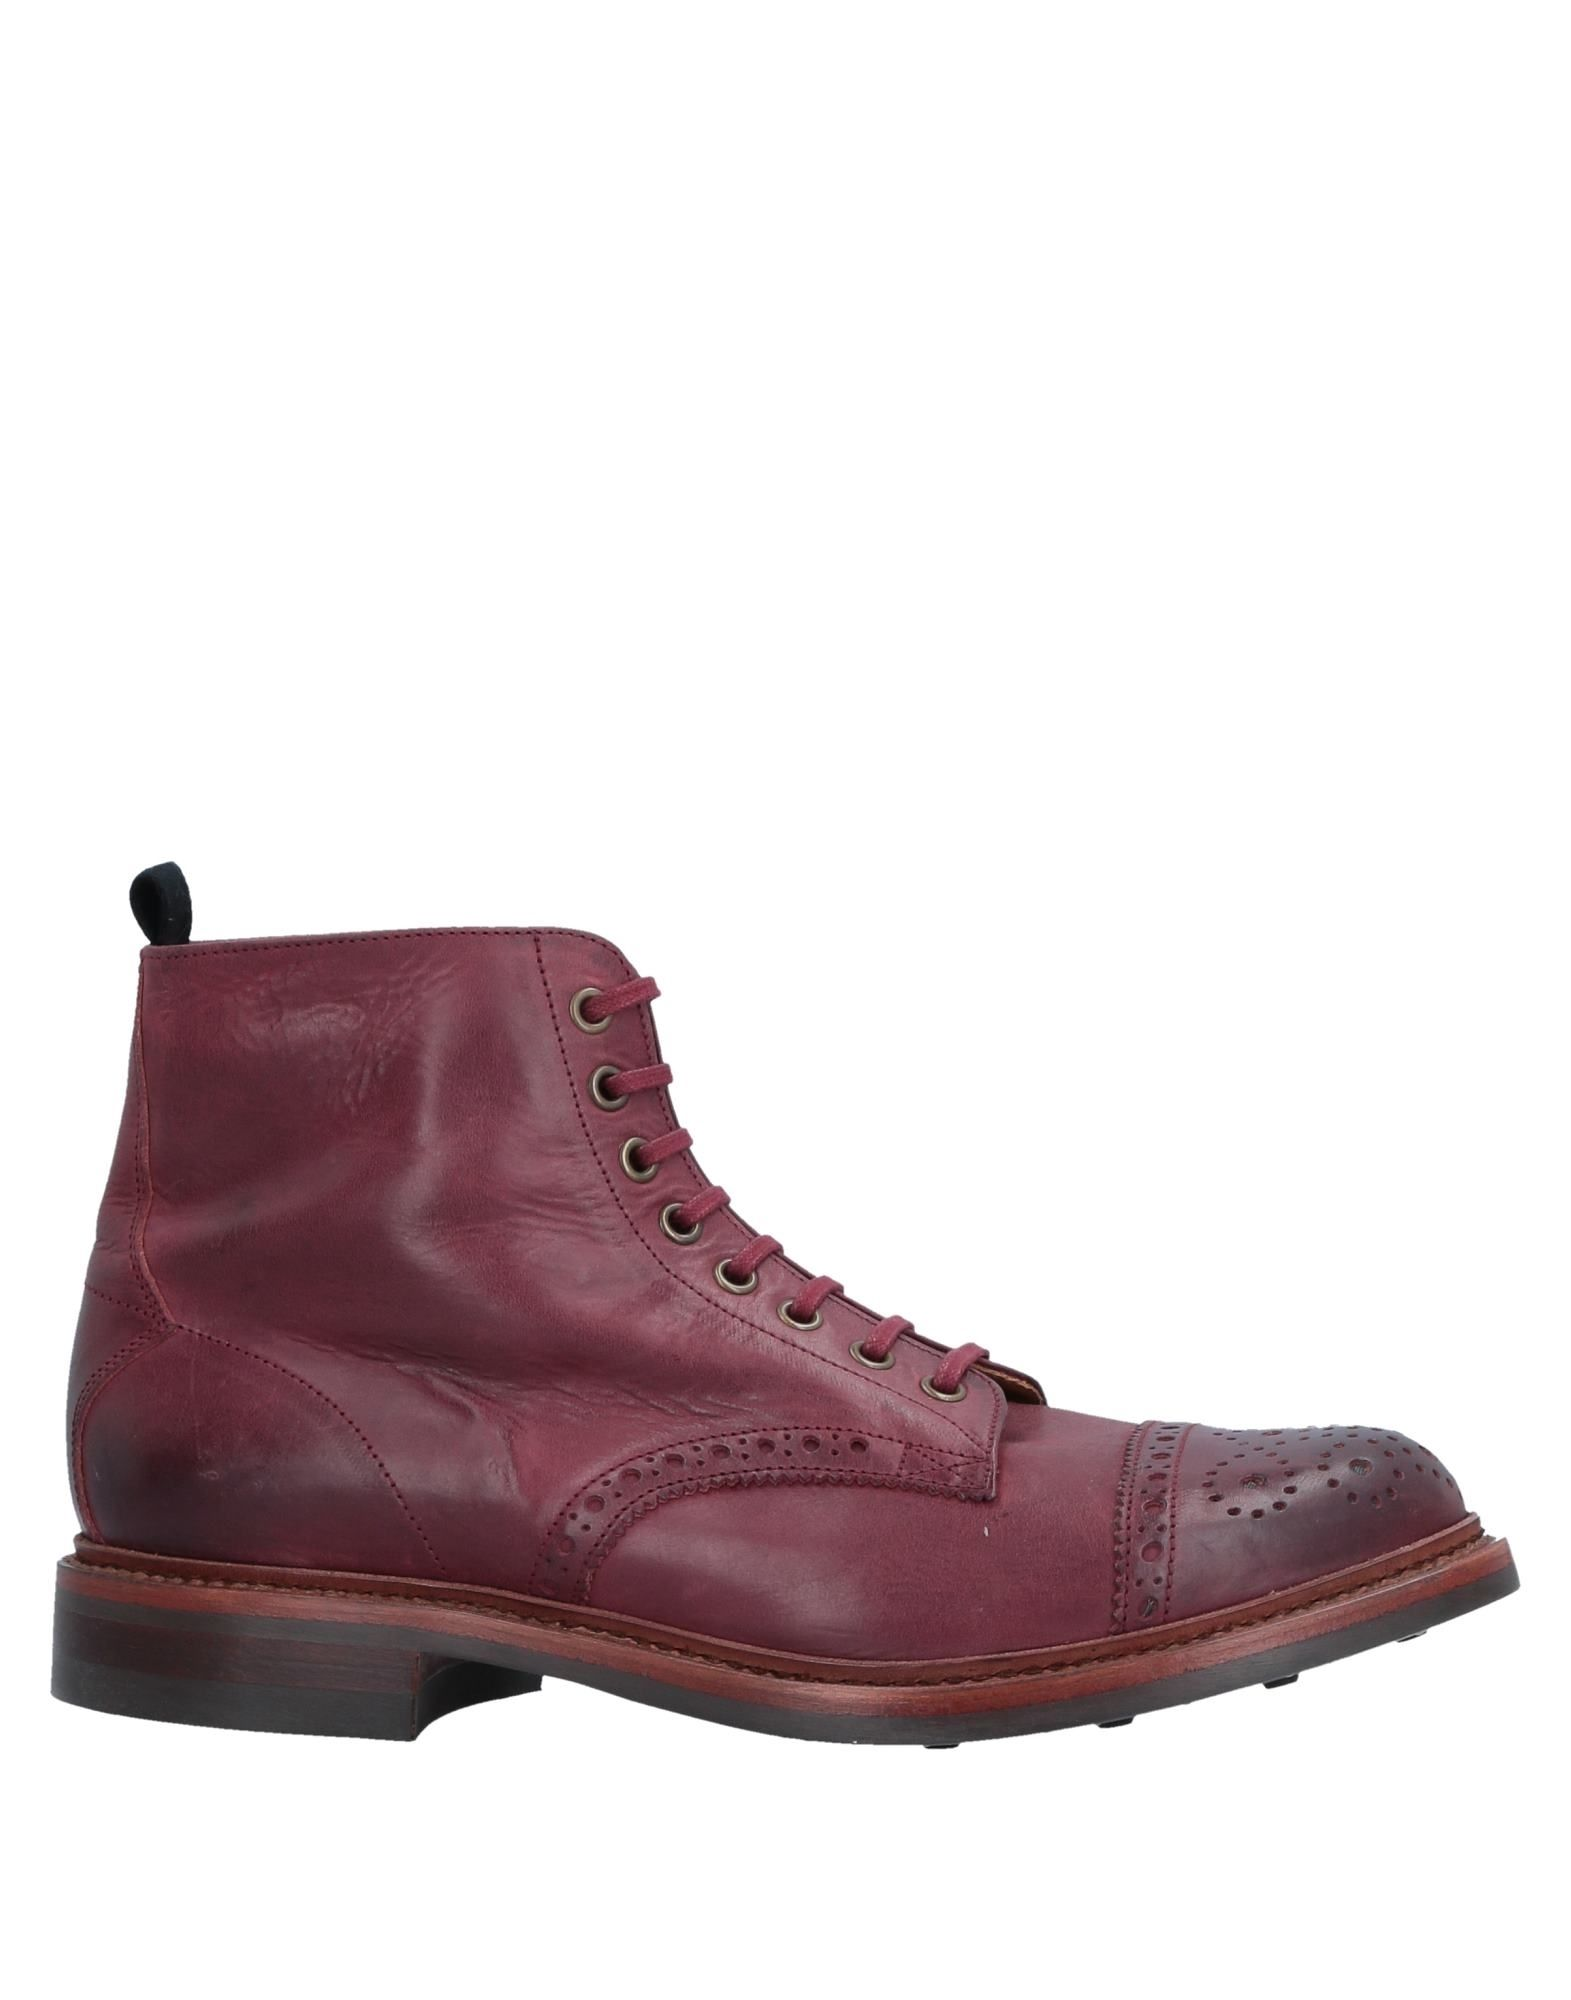 N.D.C. Made By Hand Stiefelette Herren  11514145TS